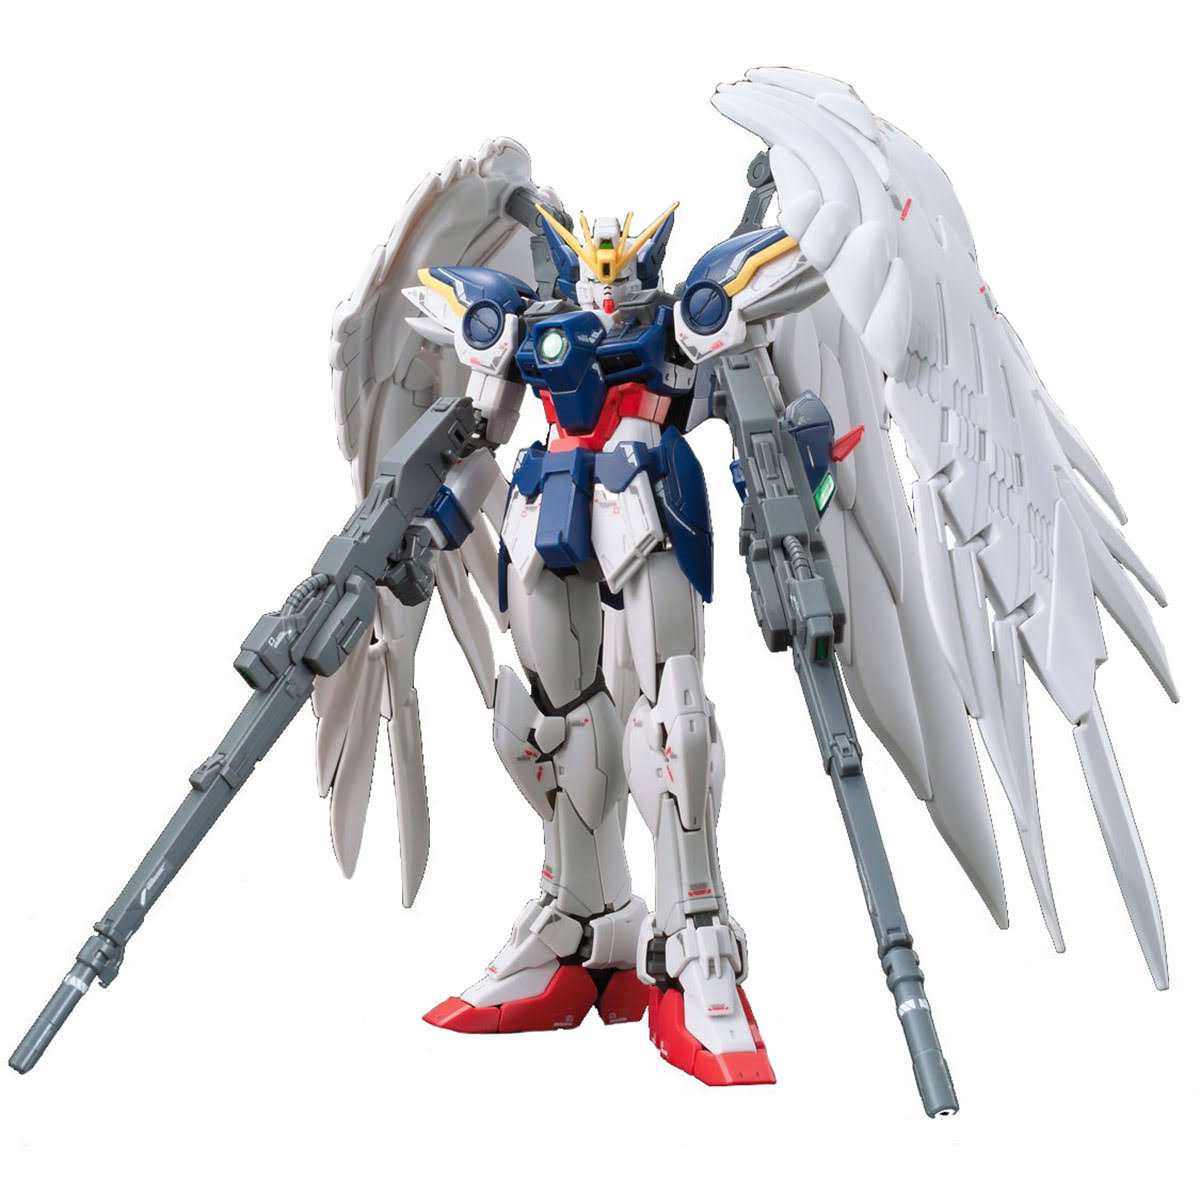 Bandai Hobby 17 Rg Wing Gundam Zero Ew Model Kit - 1/144 Scale